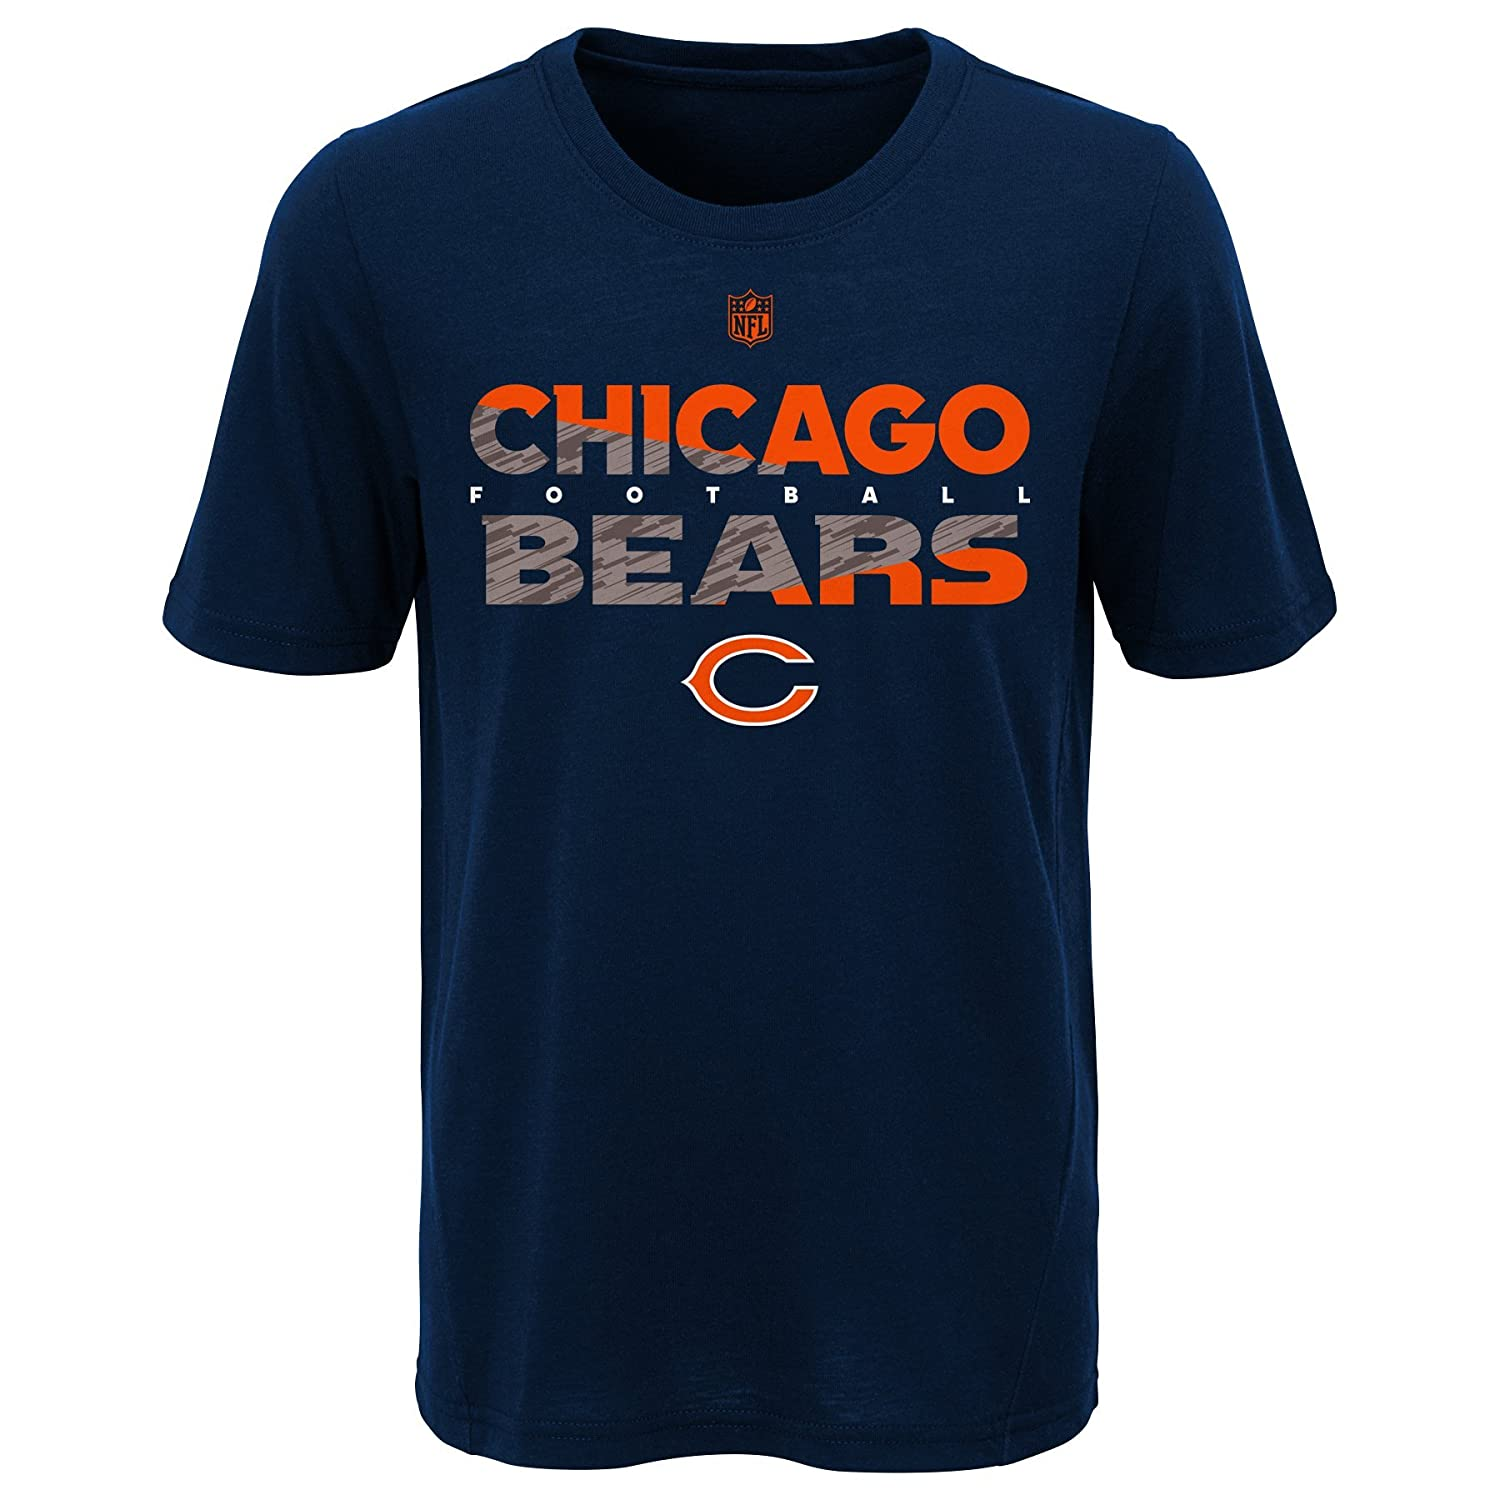 huge selection of 487ed 5c686 Amazon.com : Outerstuff Youth Boys Chicago Bears Tee NFL ...